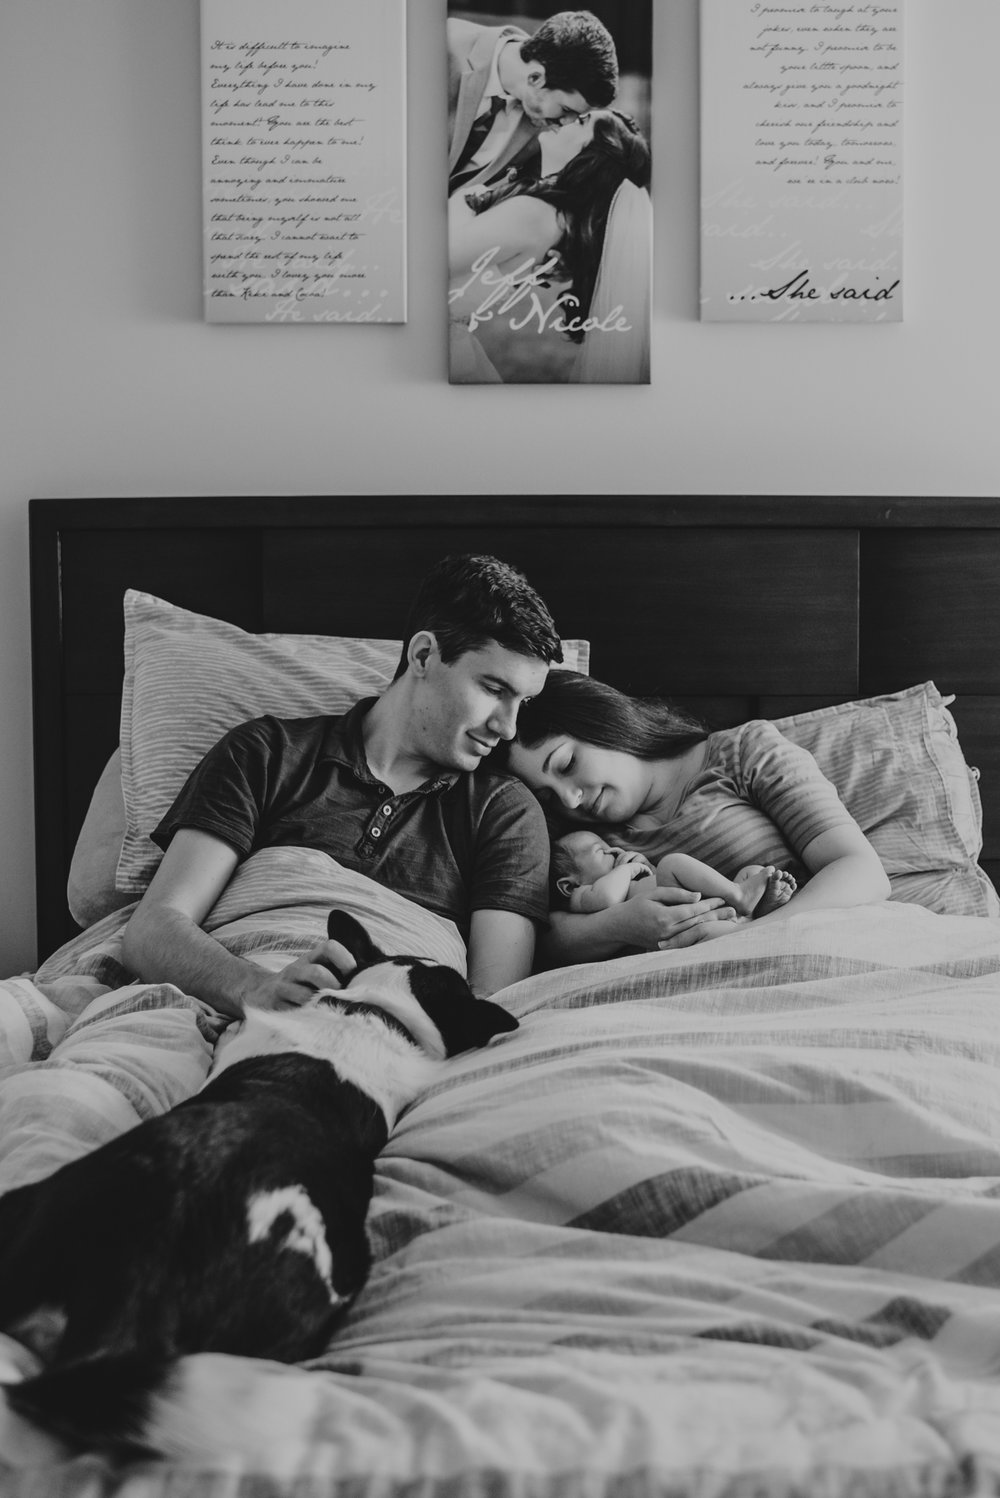 The new family snuggles with their newborn son and their puppy in bed in Wake Forest, a black and white image by Rose Trail Images.